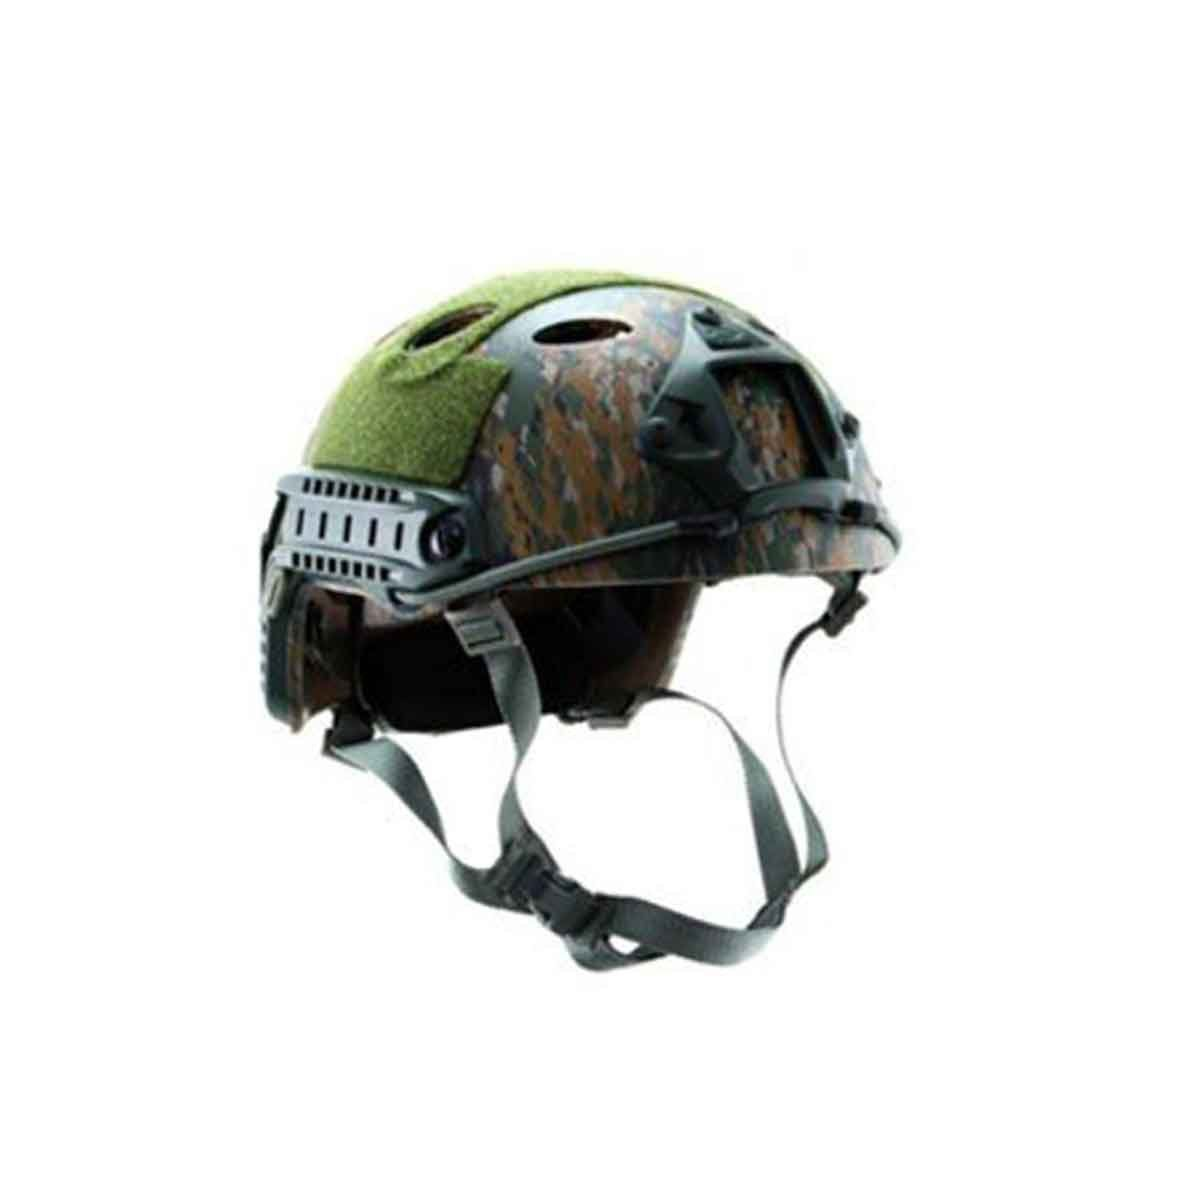 Capacete Tático Recreativo Emerson Gear Modelo Fast b Wodland Digital / Marpat